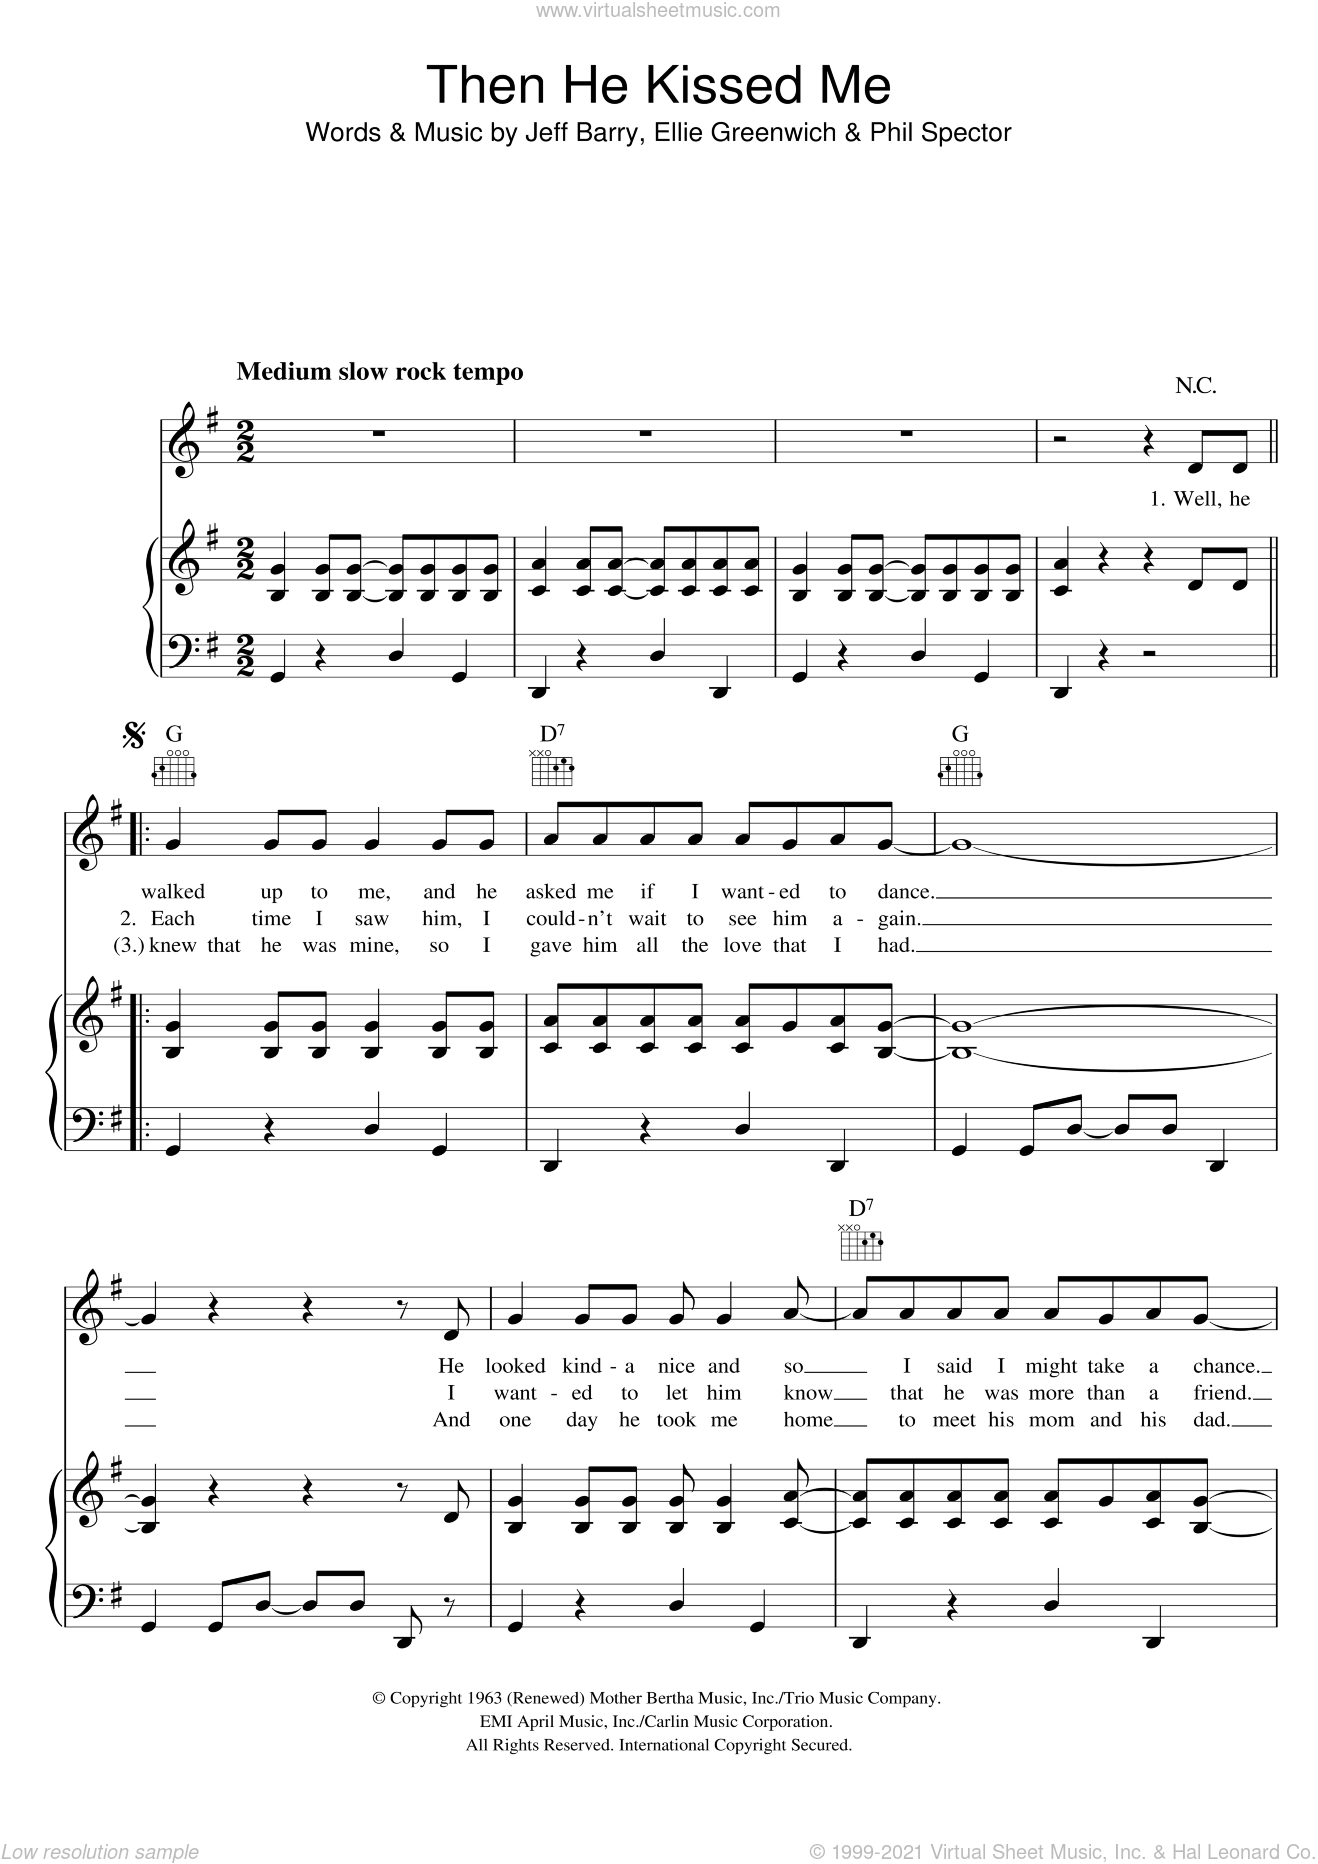 (And) Then He Kissed Me sheet music for voice, piano or guitar by The Crystals, Ellie Greenwich, Jeff Barry and Phil Spector, intermediate skill level